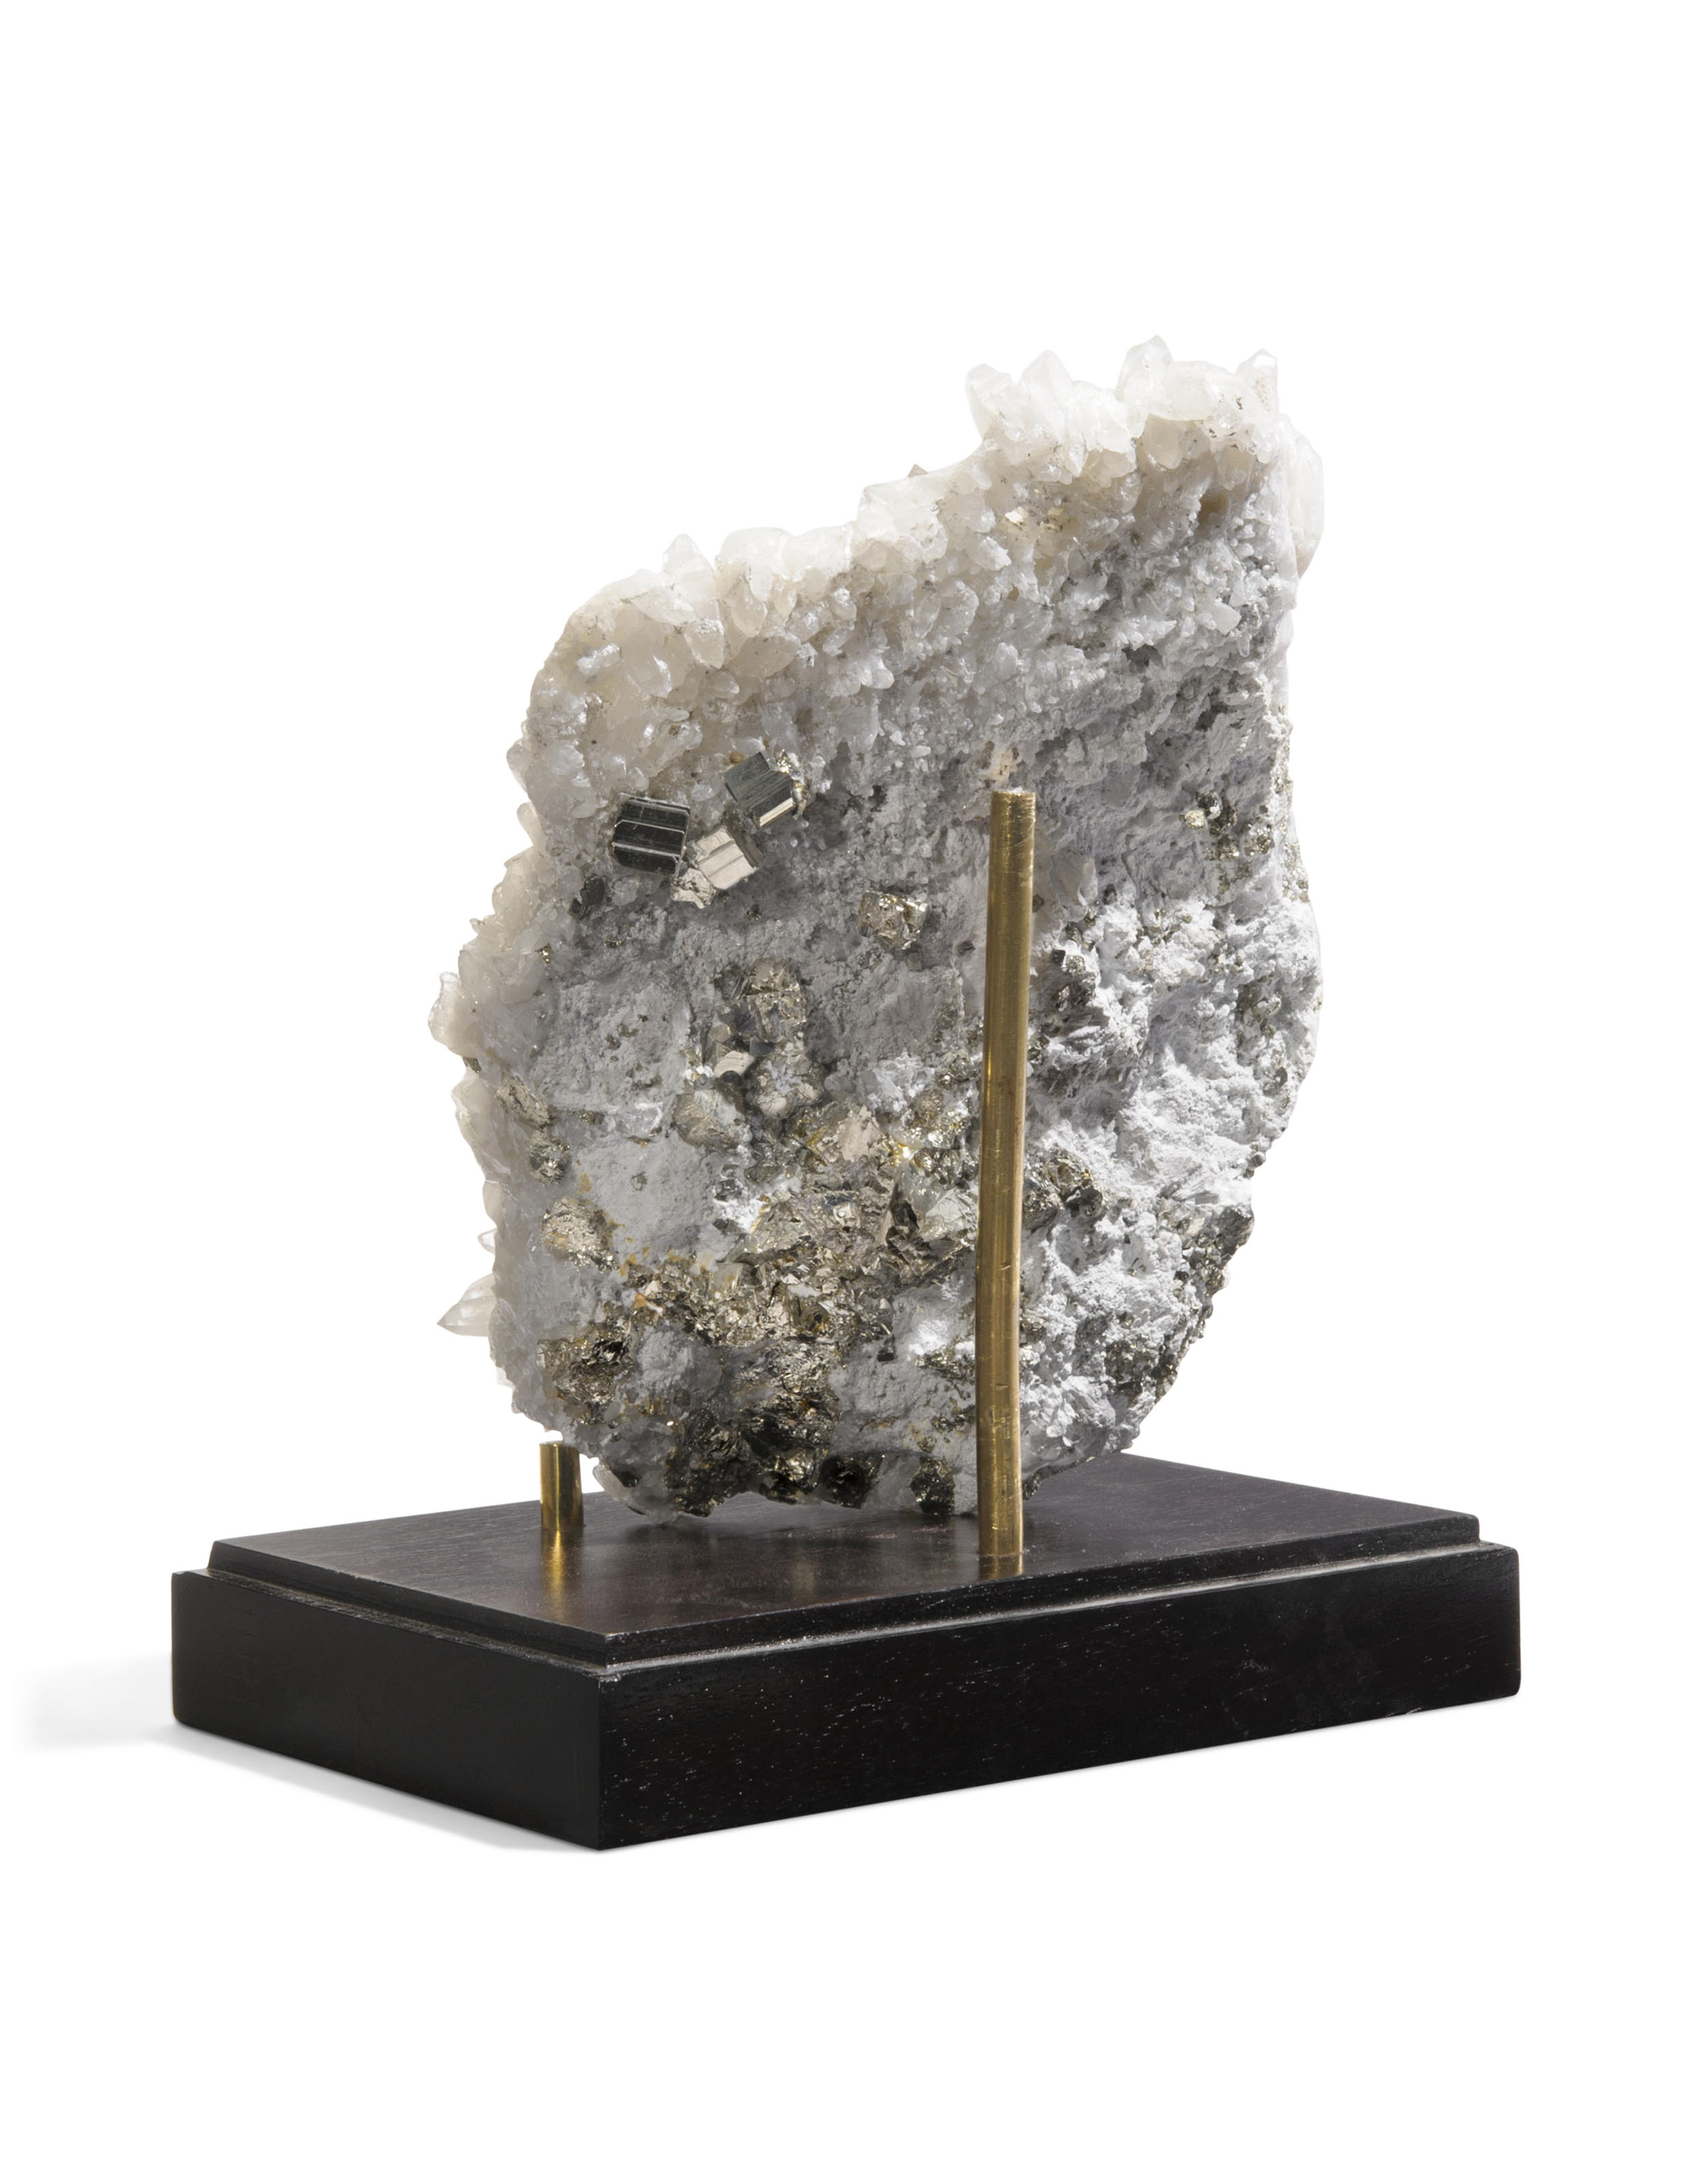 A SPECIMEN OF PYRITE IN QUARTZ